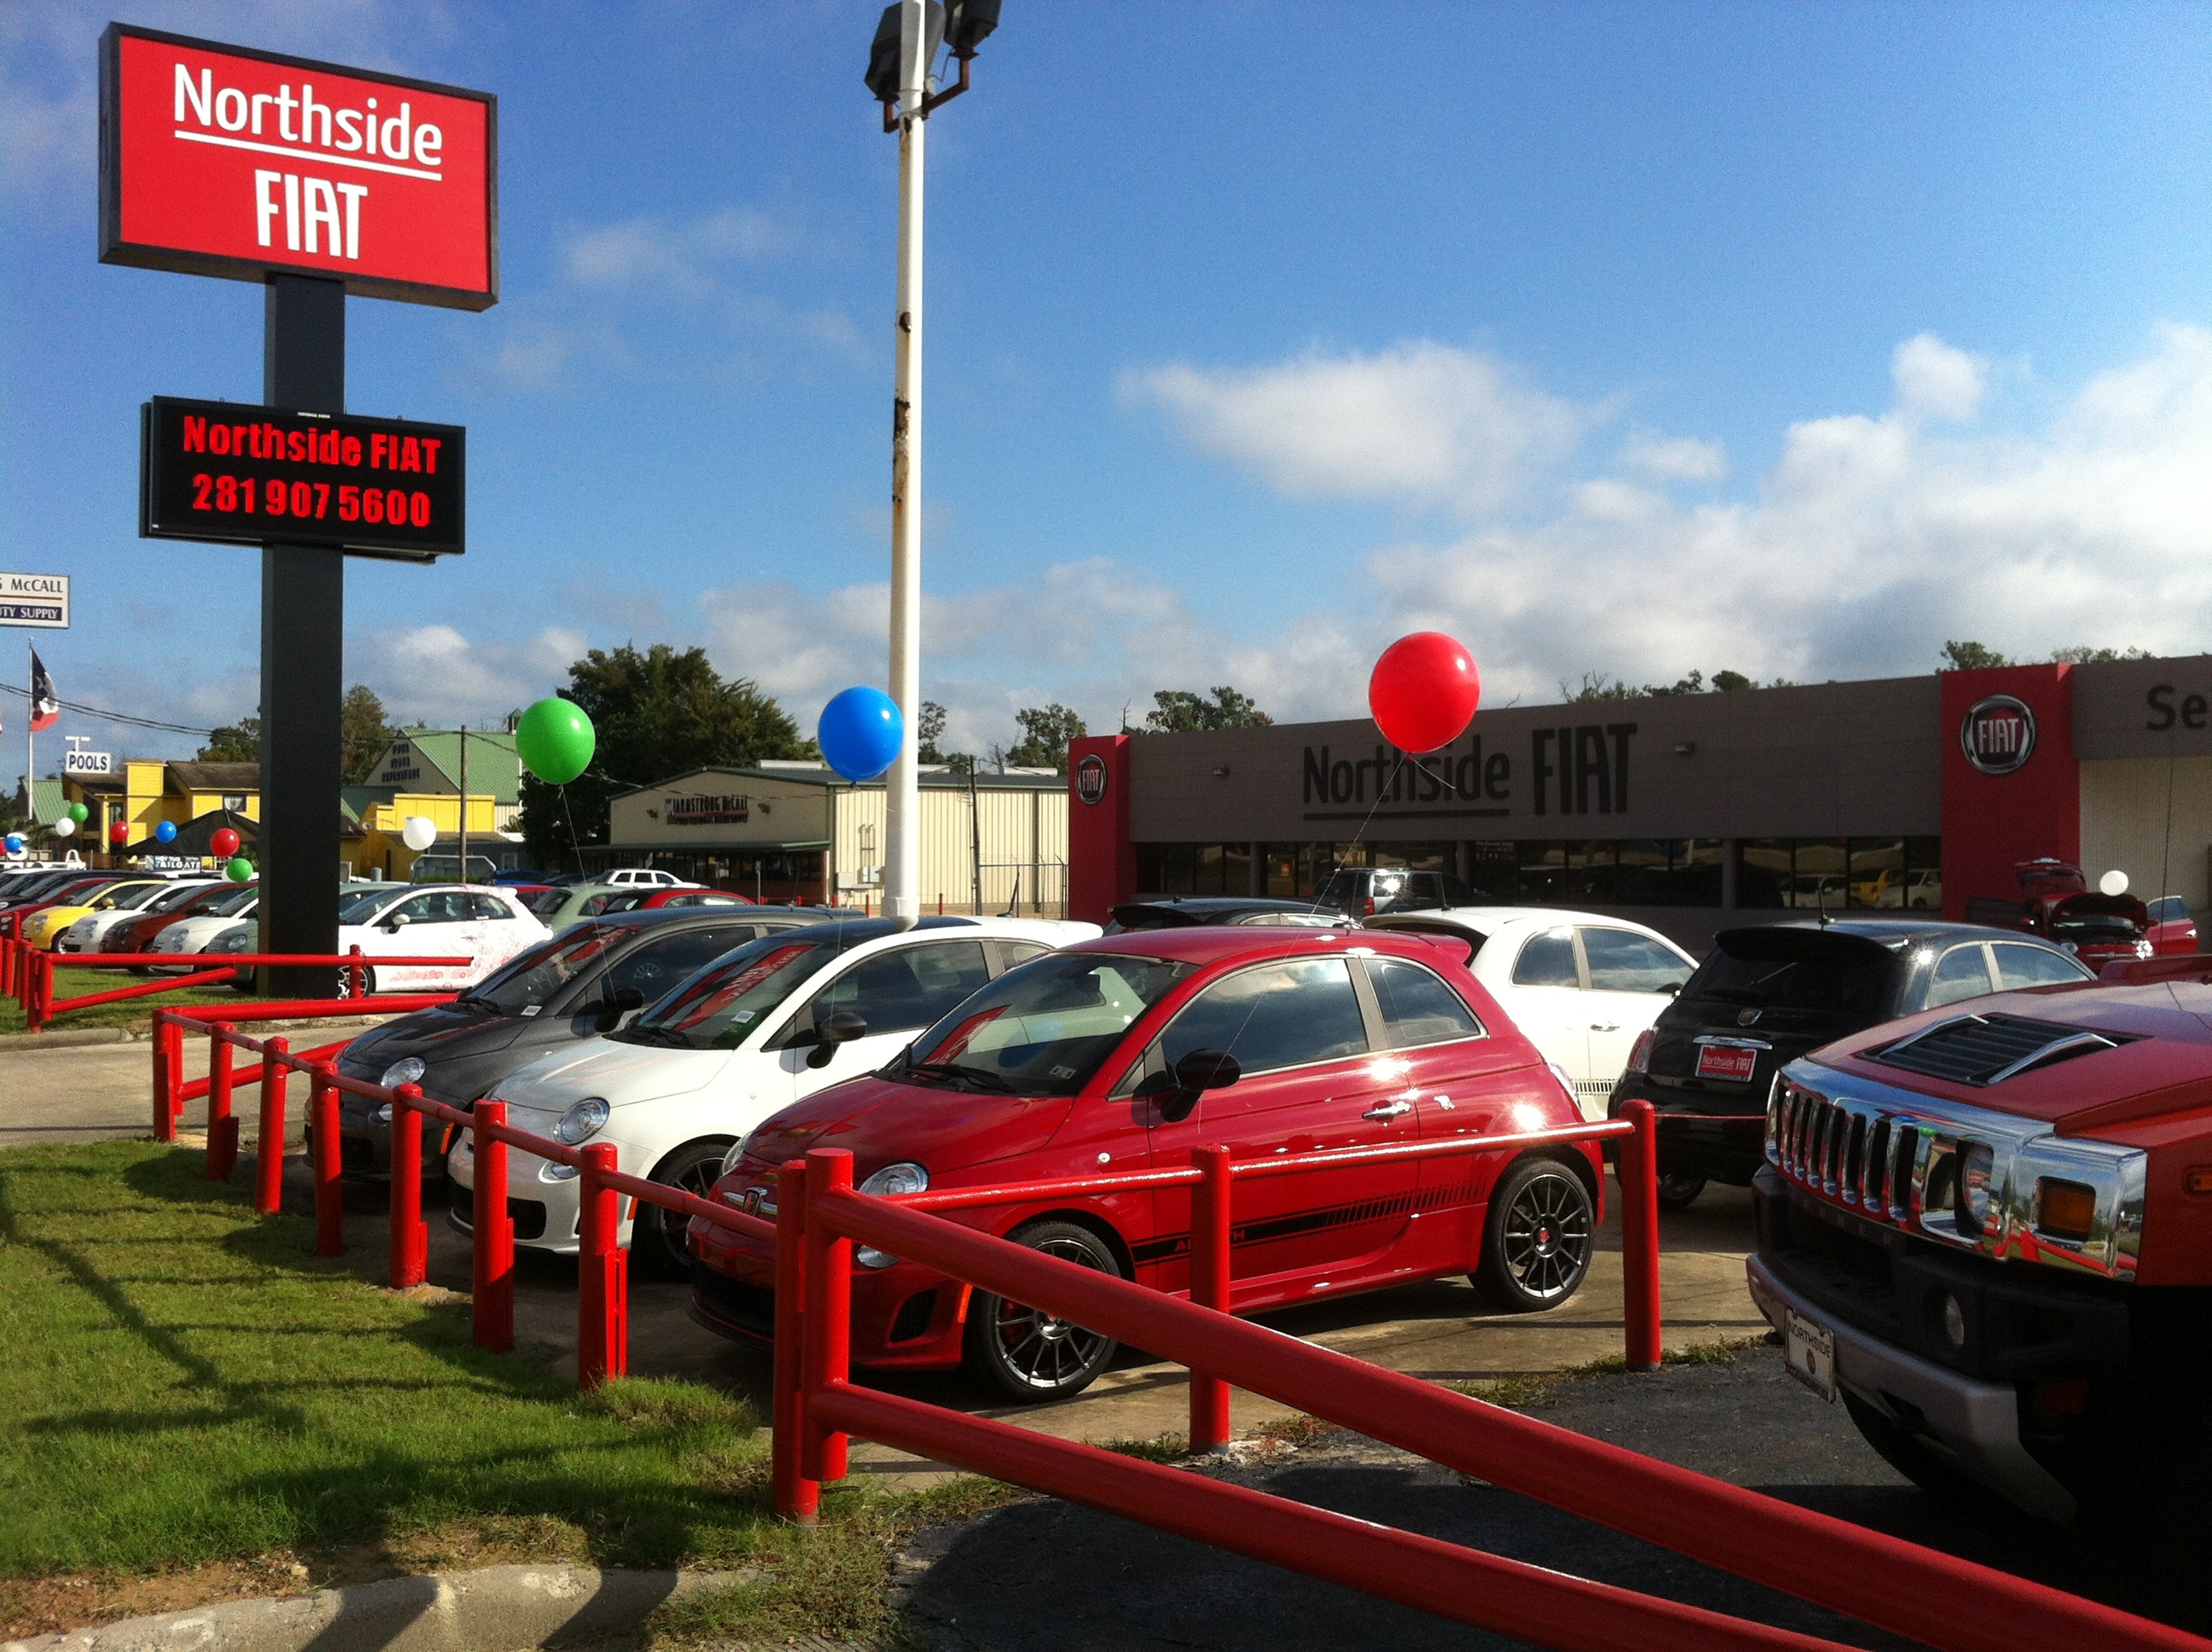 Northside FIAT Of Houston New FIAT Dealership In Spring TX - Where is the nearest fiat dealership